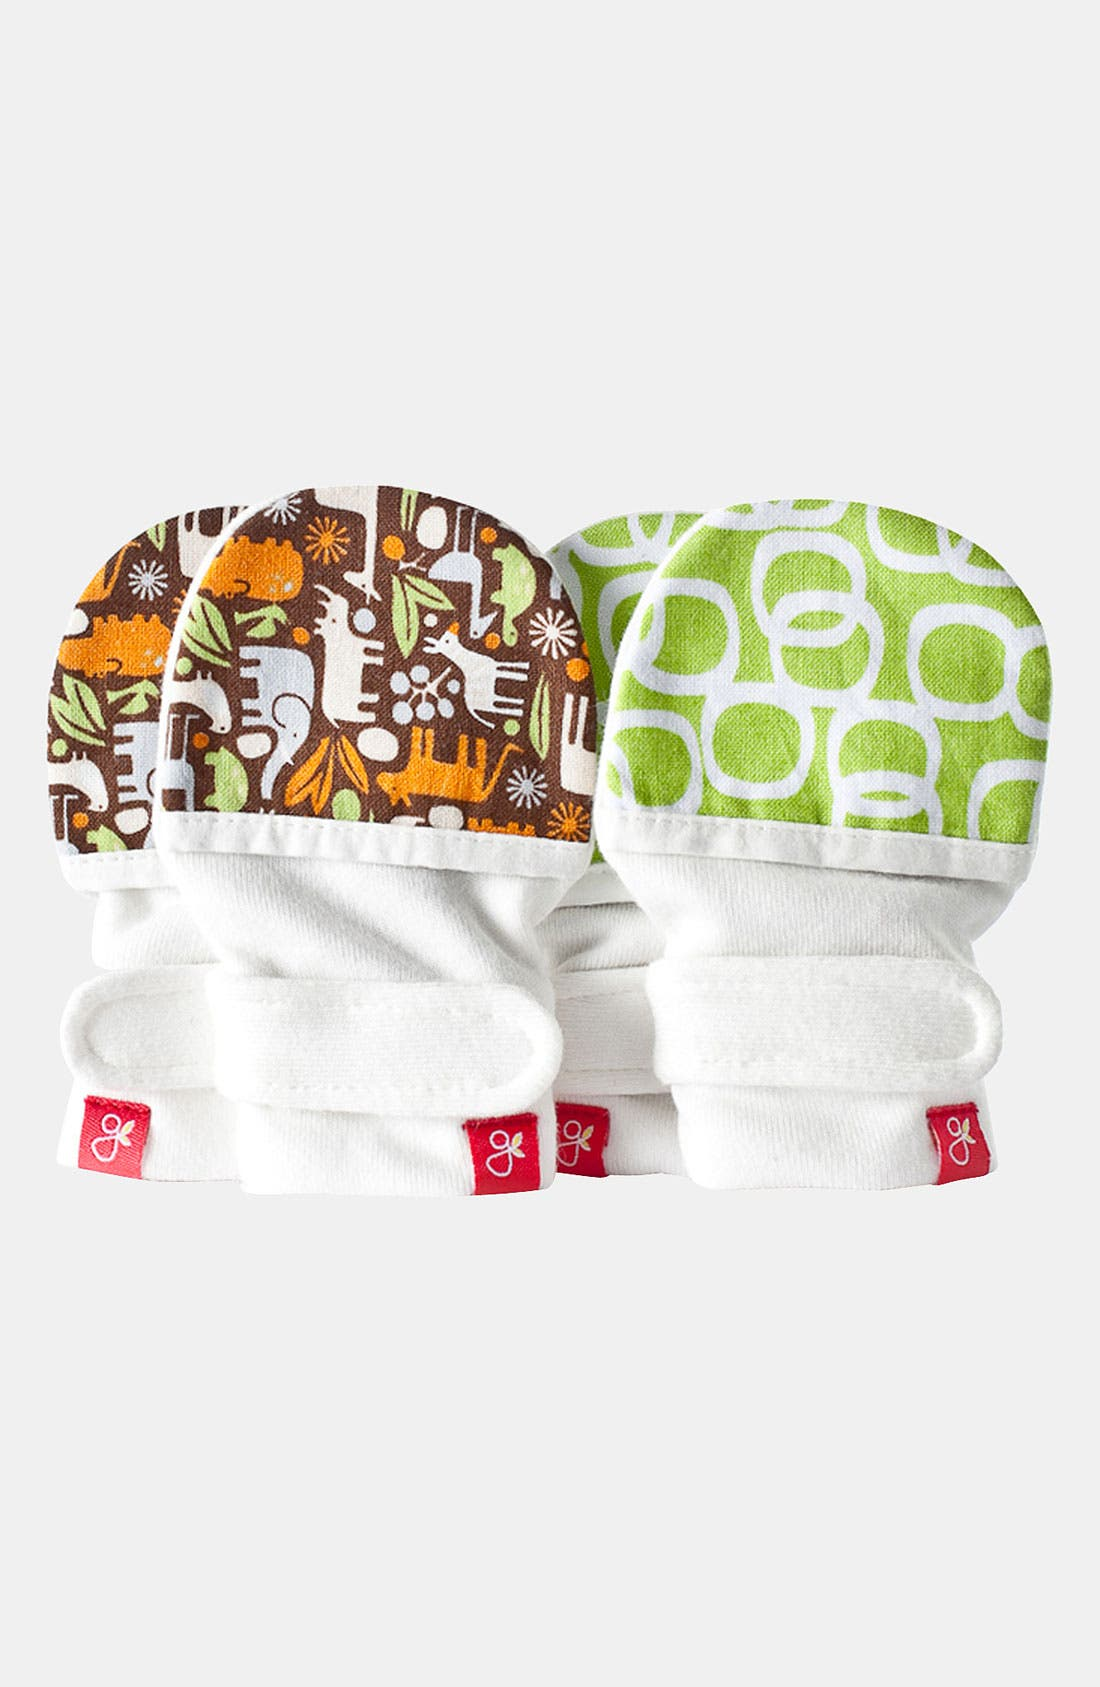 Alternate Image 1 Selected - Guavamitts Mittens (Set of 2) (Infant)